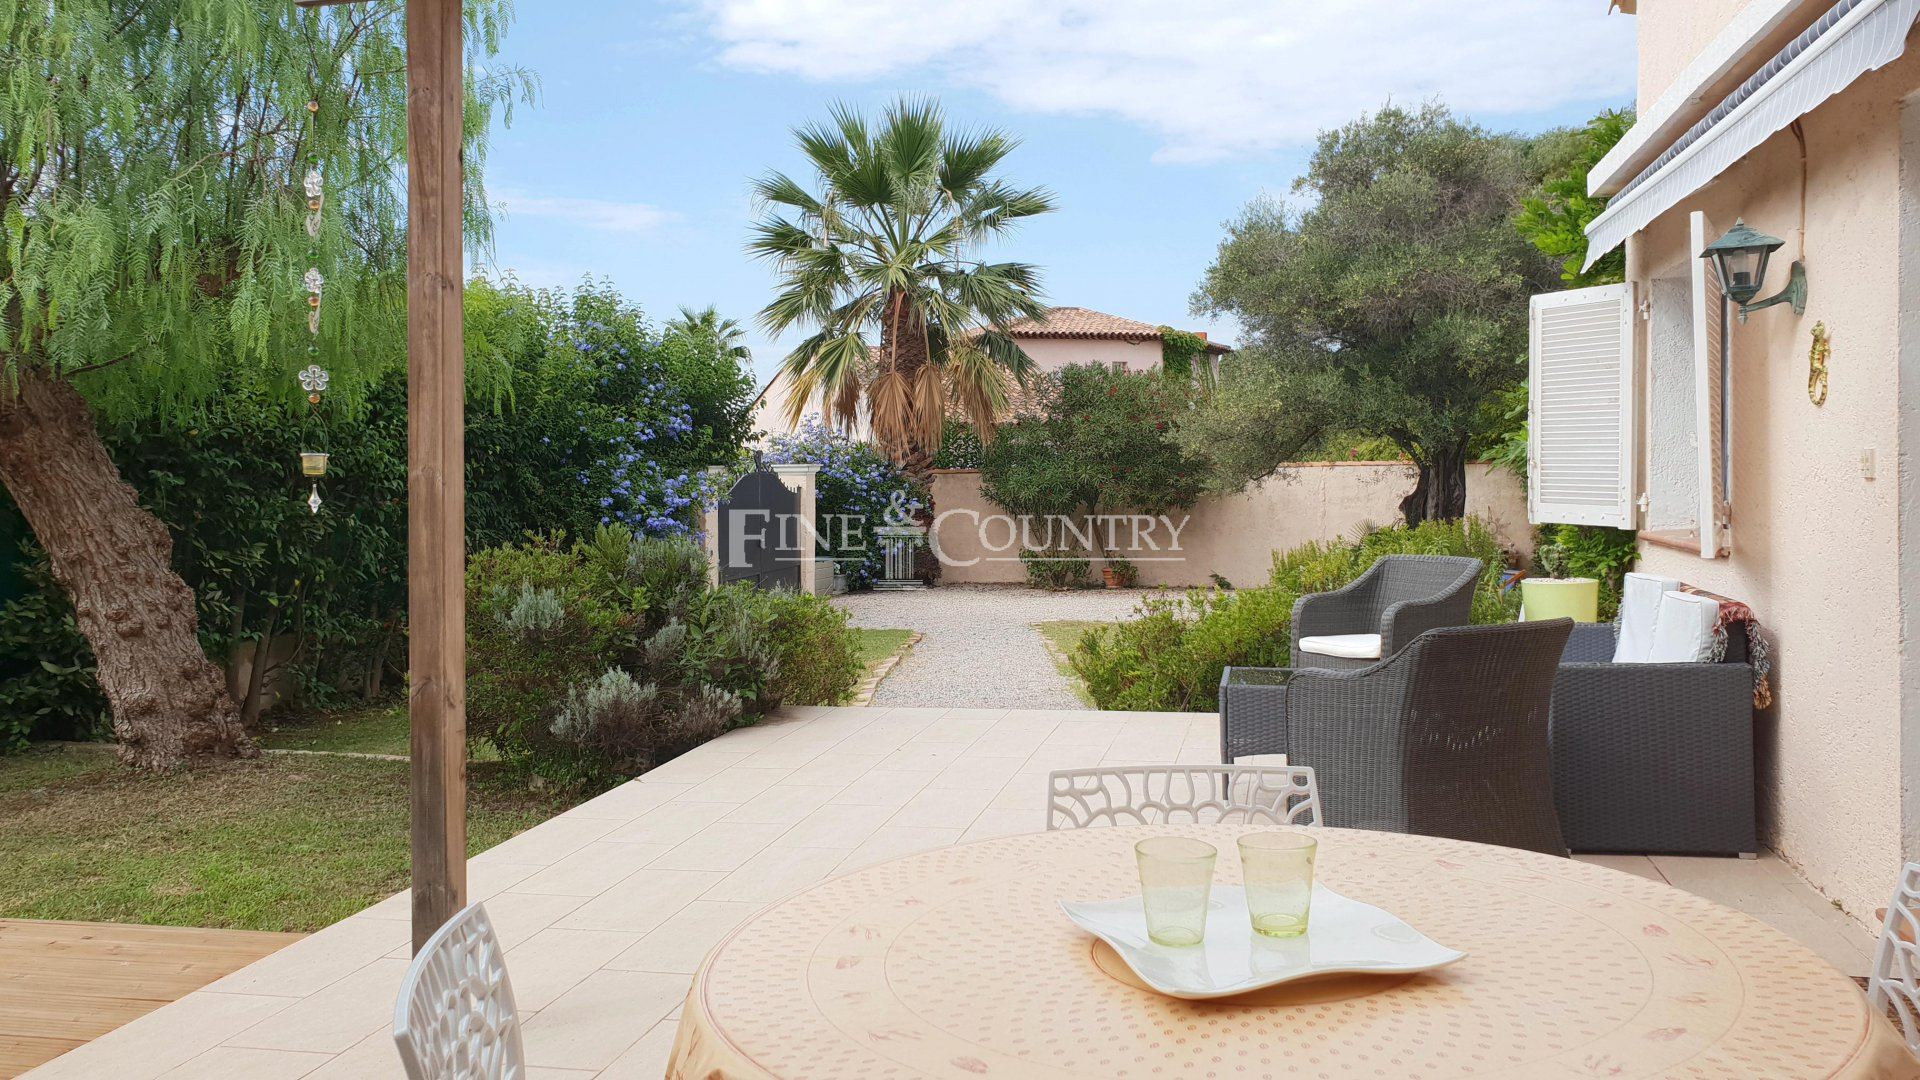 Villa for sale Antibes, Cap d'Antibes, Close to beach.